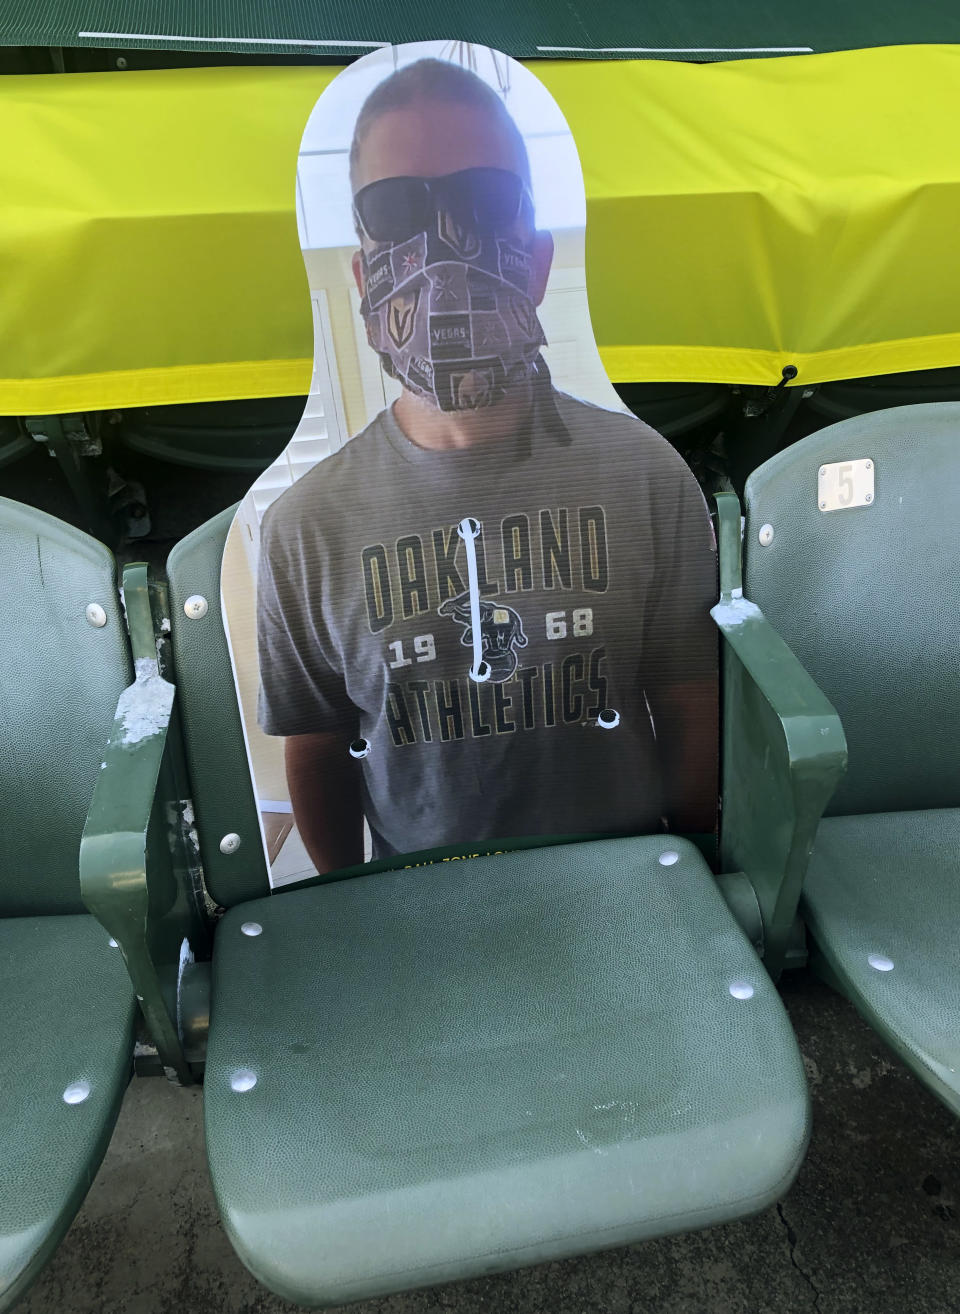 A cardboard cutout depicting A's fan Richard Lovelady of Henderson, Nev., is displayed in a section of the Oakland Coliseum after the baseball game between the Los Angeles Angels and the Oakland Athletics on Monday, July 27, 2020, in Oakland, Calif. An approach taken by some teams is sending out souvenirs to fans if their cardboard cutout gets hit by a ball. The Longtime A's supporter lucked out last Friday night when his cutout section 126, row 24, seat 4 was struck by Matt Olson's foul.(AP Photo/Ben Margot)